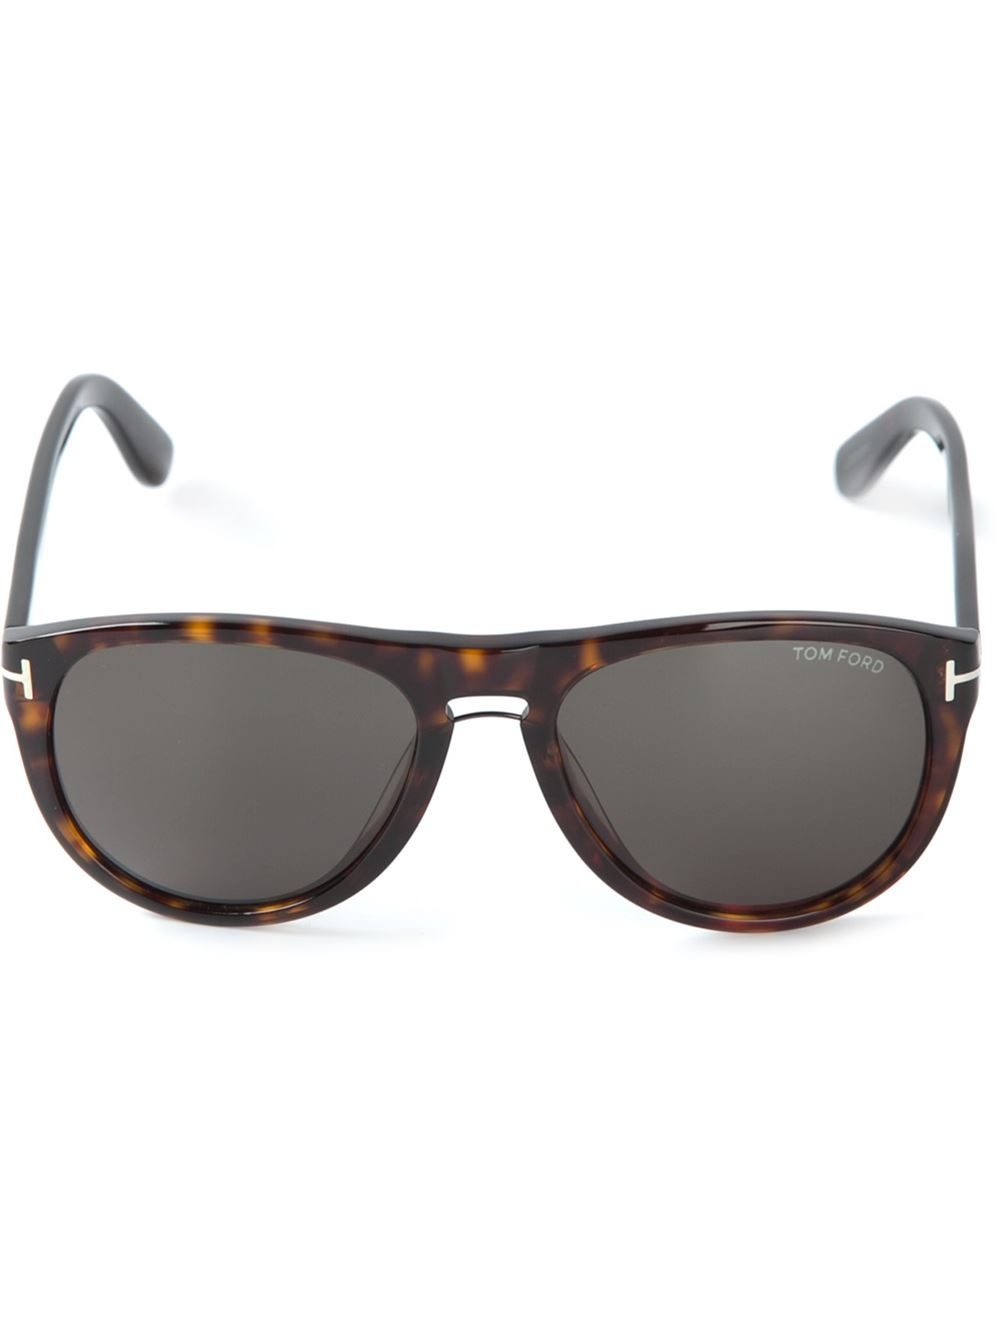 196a0017726b Lyst - Tom Ford  Kurt  Sunglasses in Brown for Men